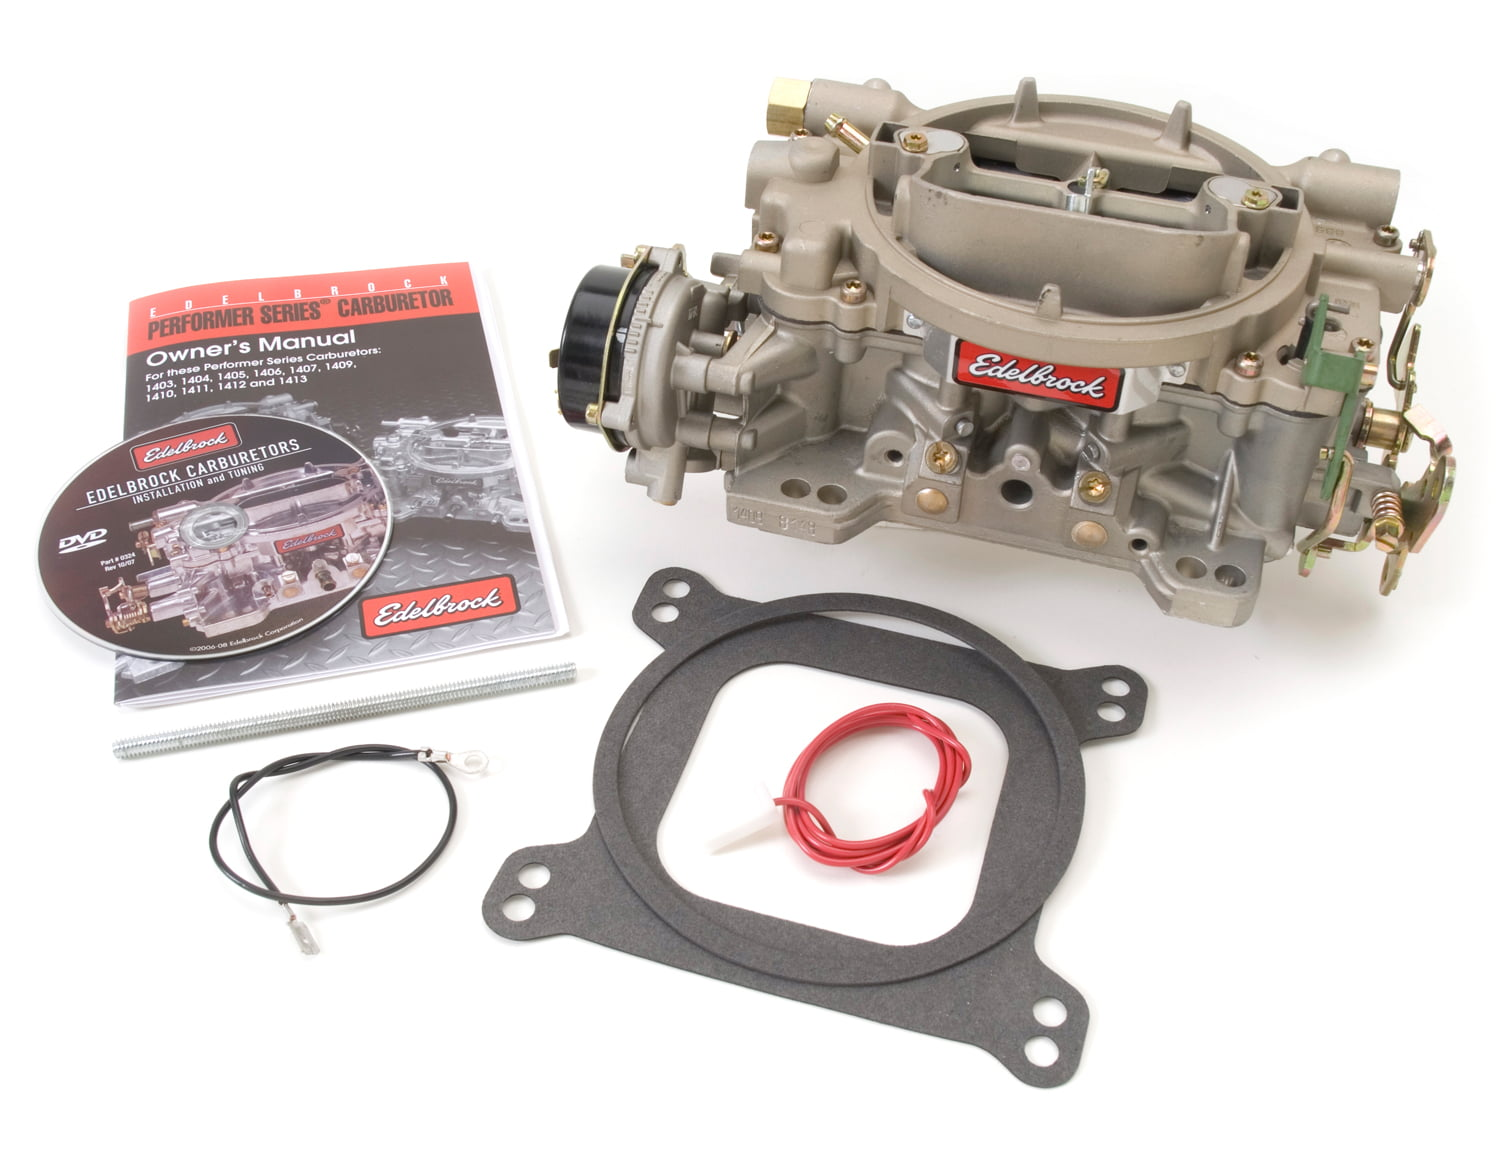 ALLSTAR PERFORMANCE 54282 4500 FUEL REG BRKT CLEAR